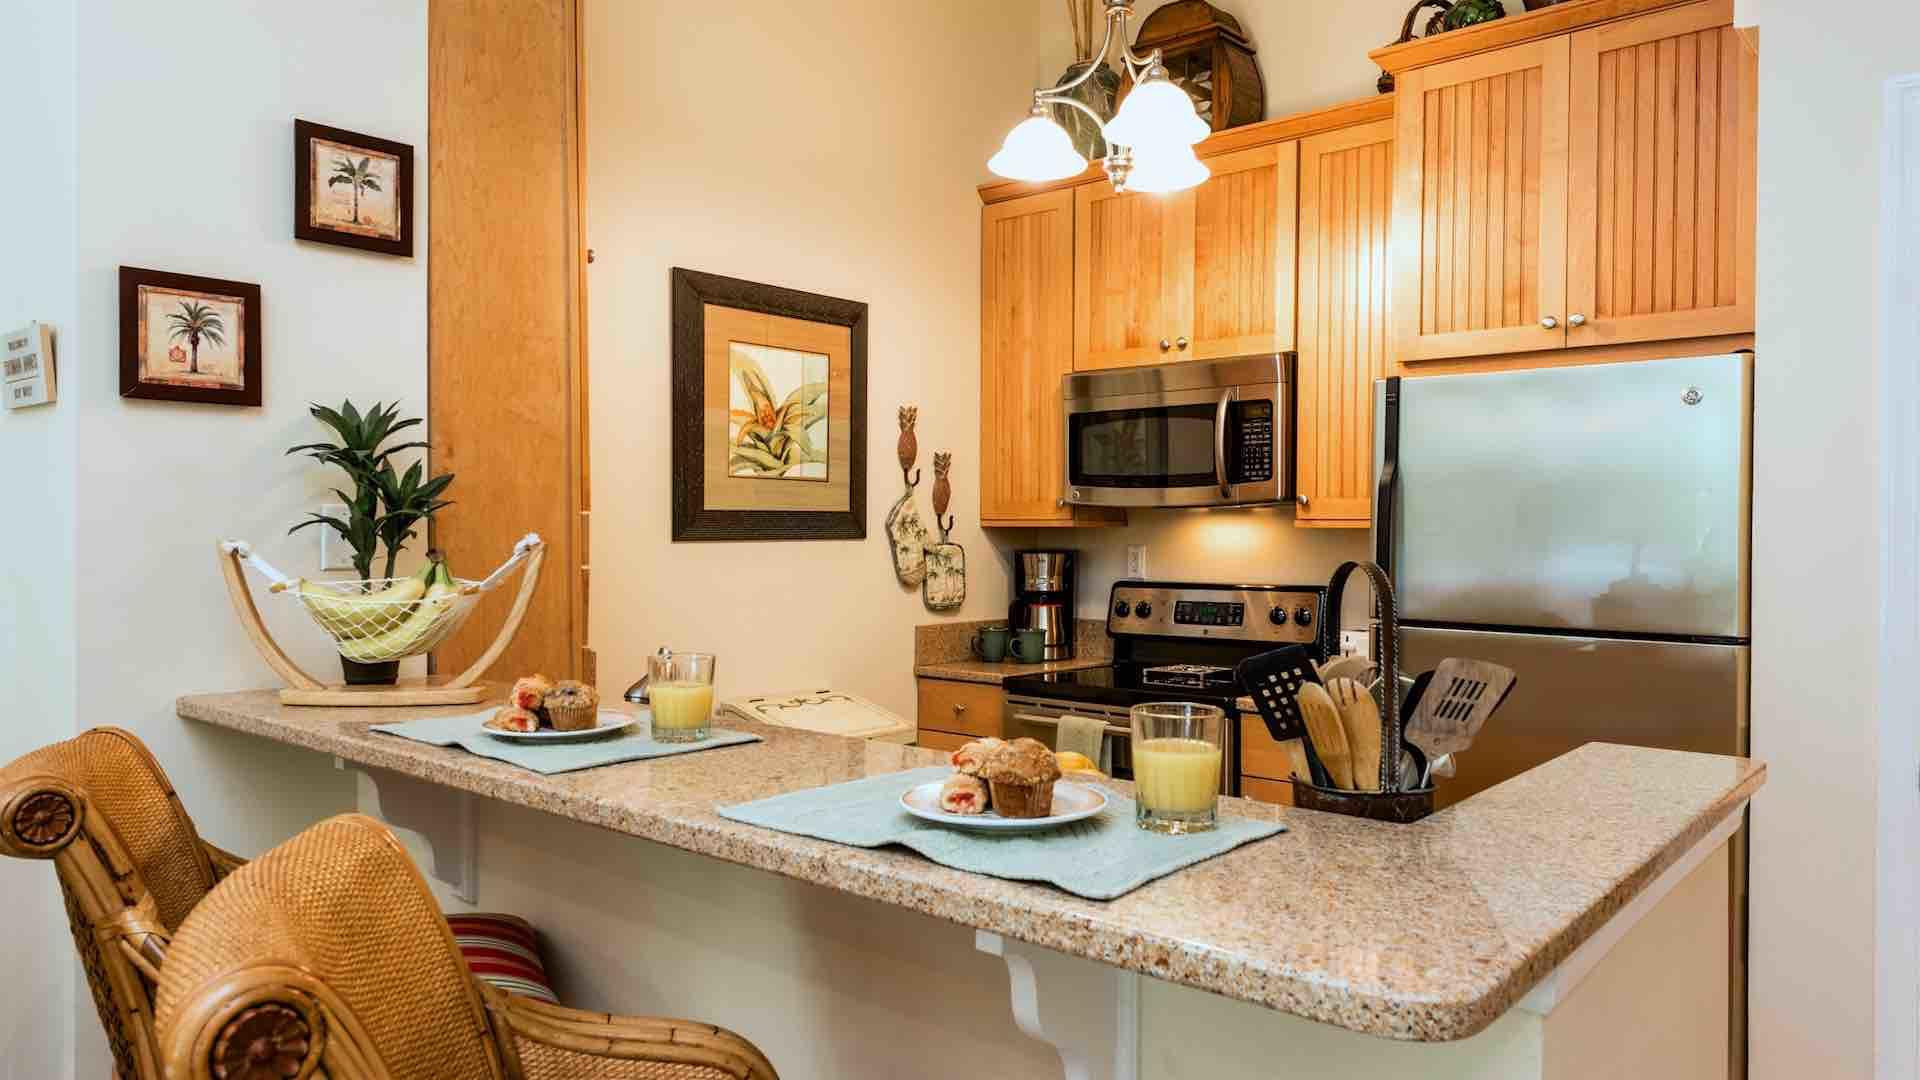 Additional dining or seating for two can be found at the kitchen bar...